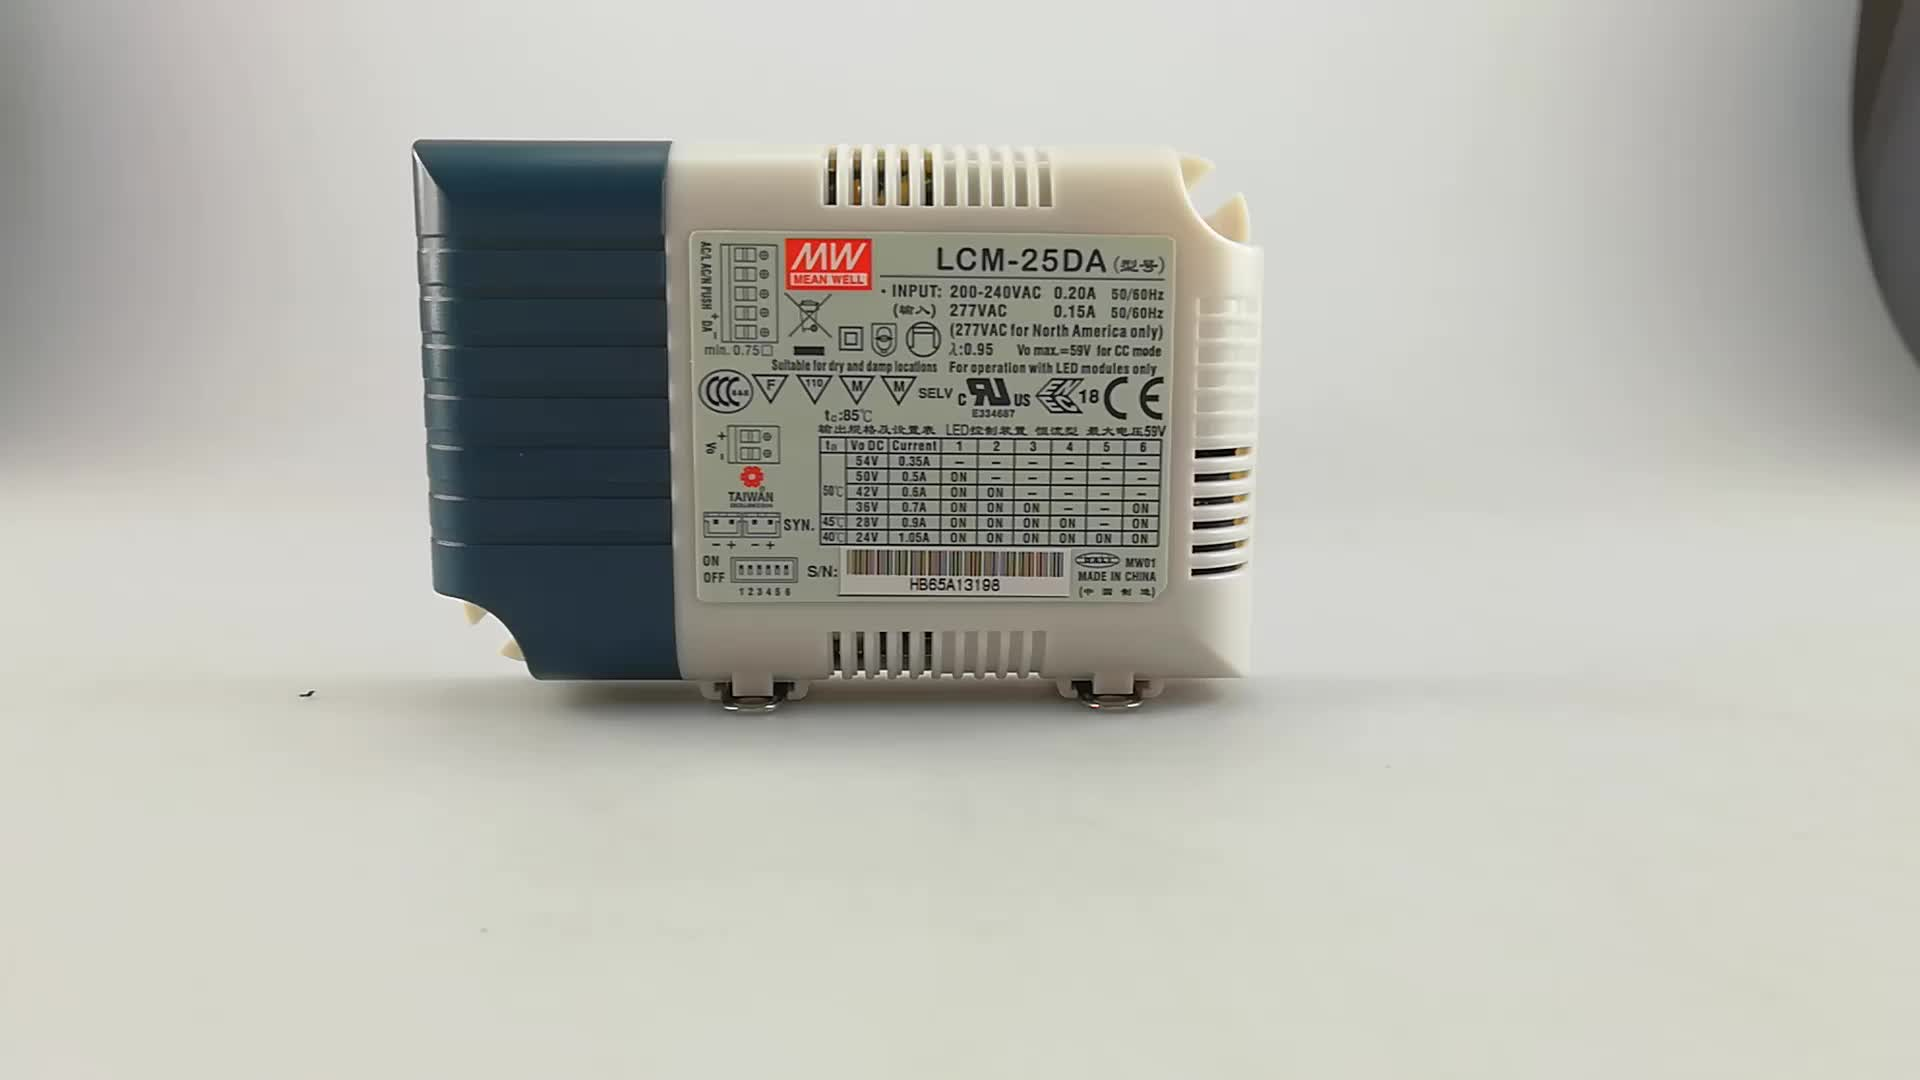 MEAN WELL LED DRIVER LCM-25DA 350mA 500mA 900mA 1050mA 25W led driver